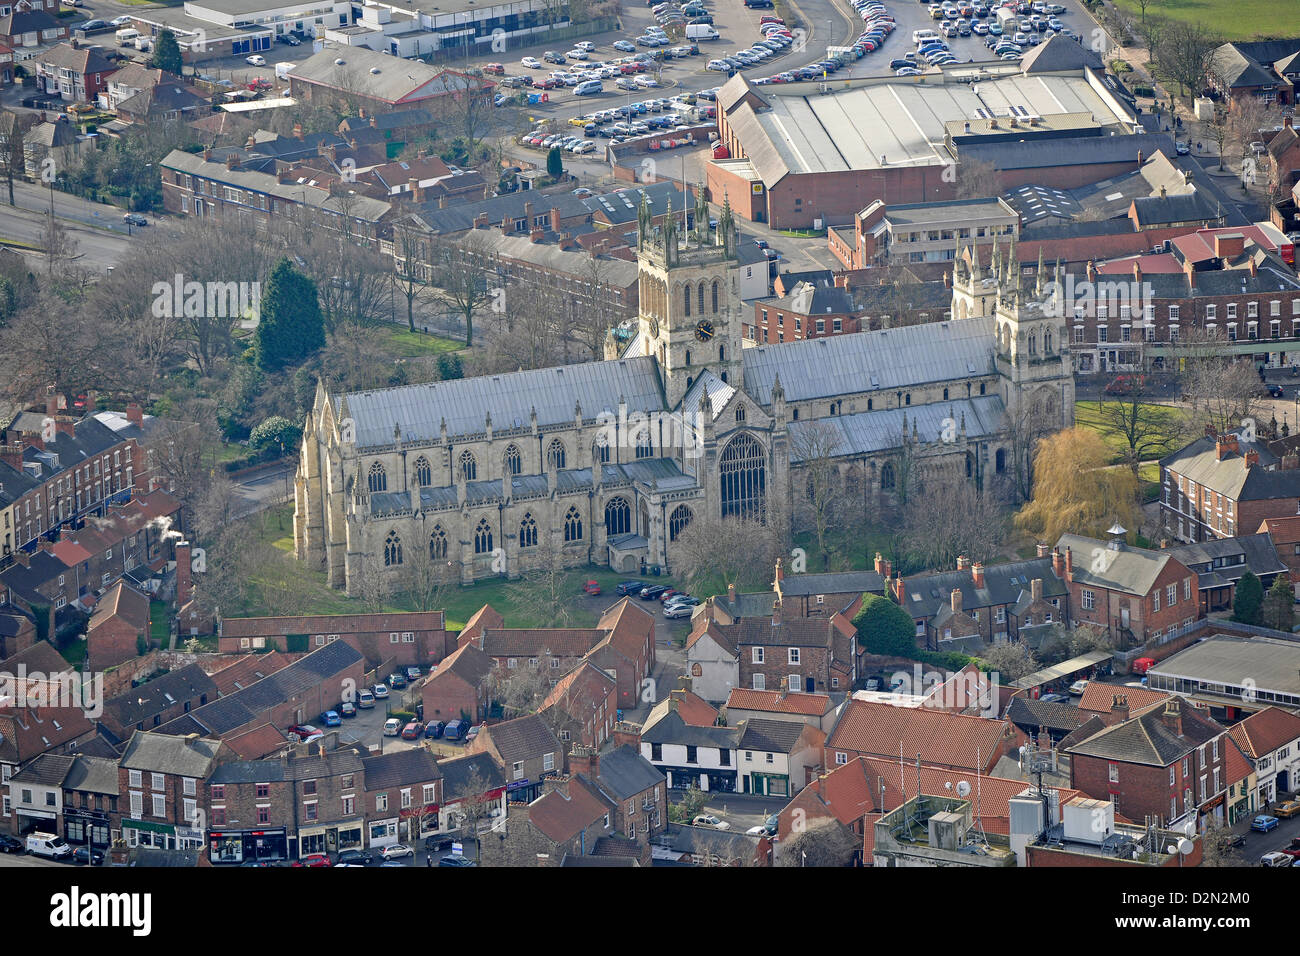 Aerial photograph of Selby Abbey - Stock Image